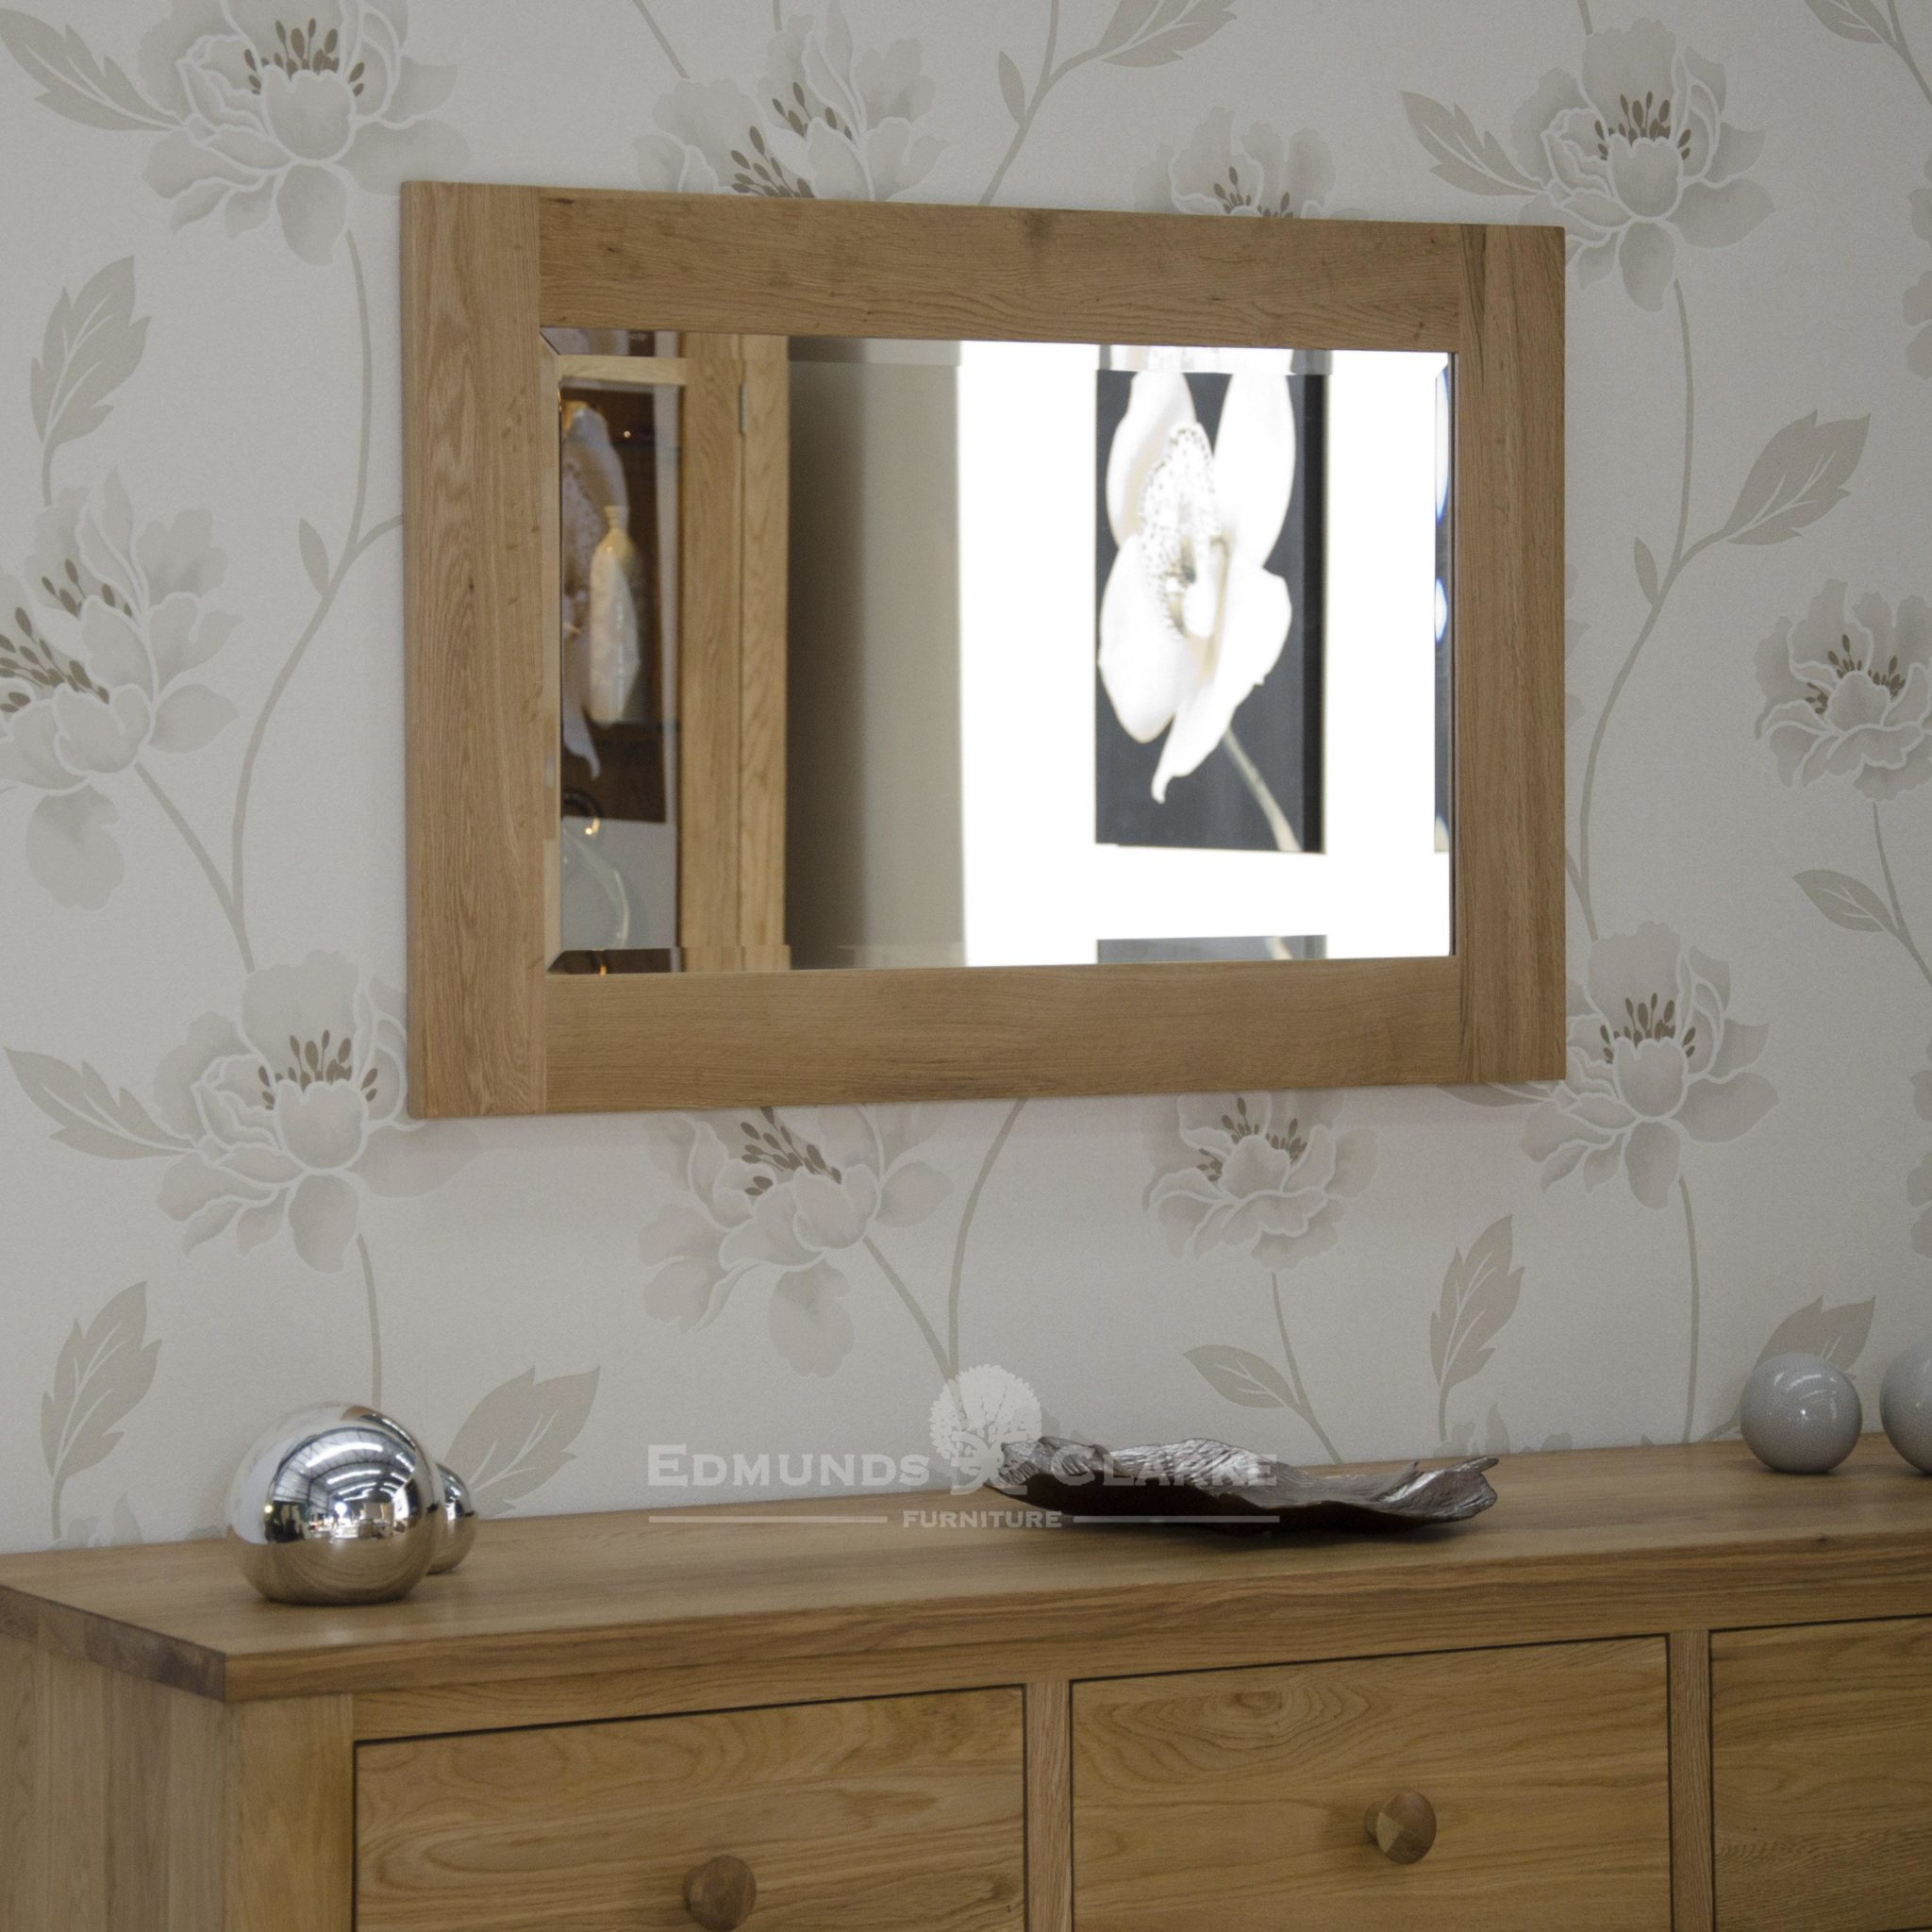 solid oak wall mirror - 60x90, bevelled mirror inside a chunky oak frame. hang vertically or horizontally